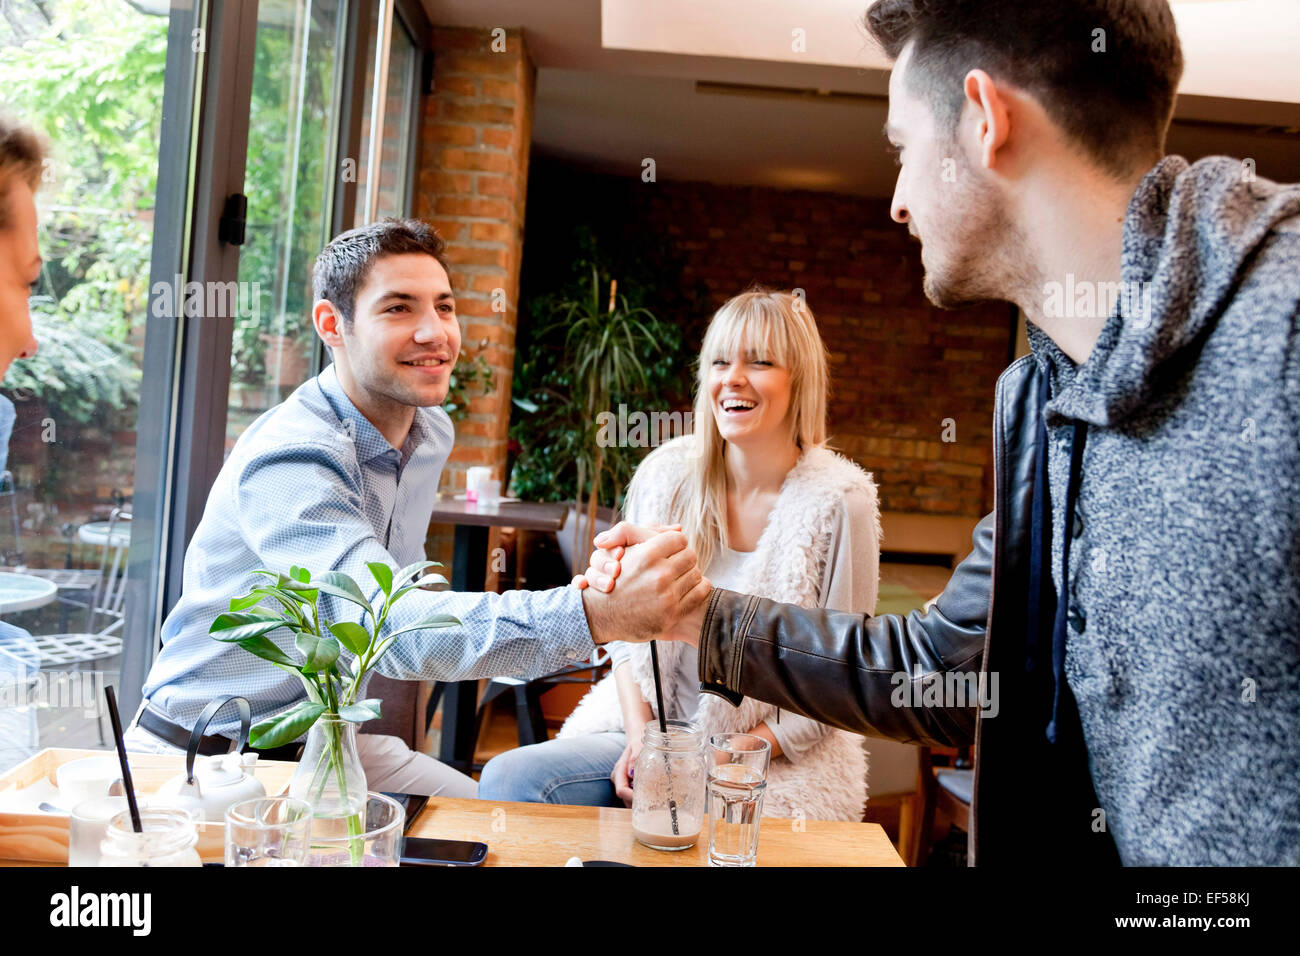 Friends shaking hands at home - Stock Image